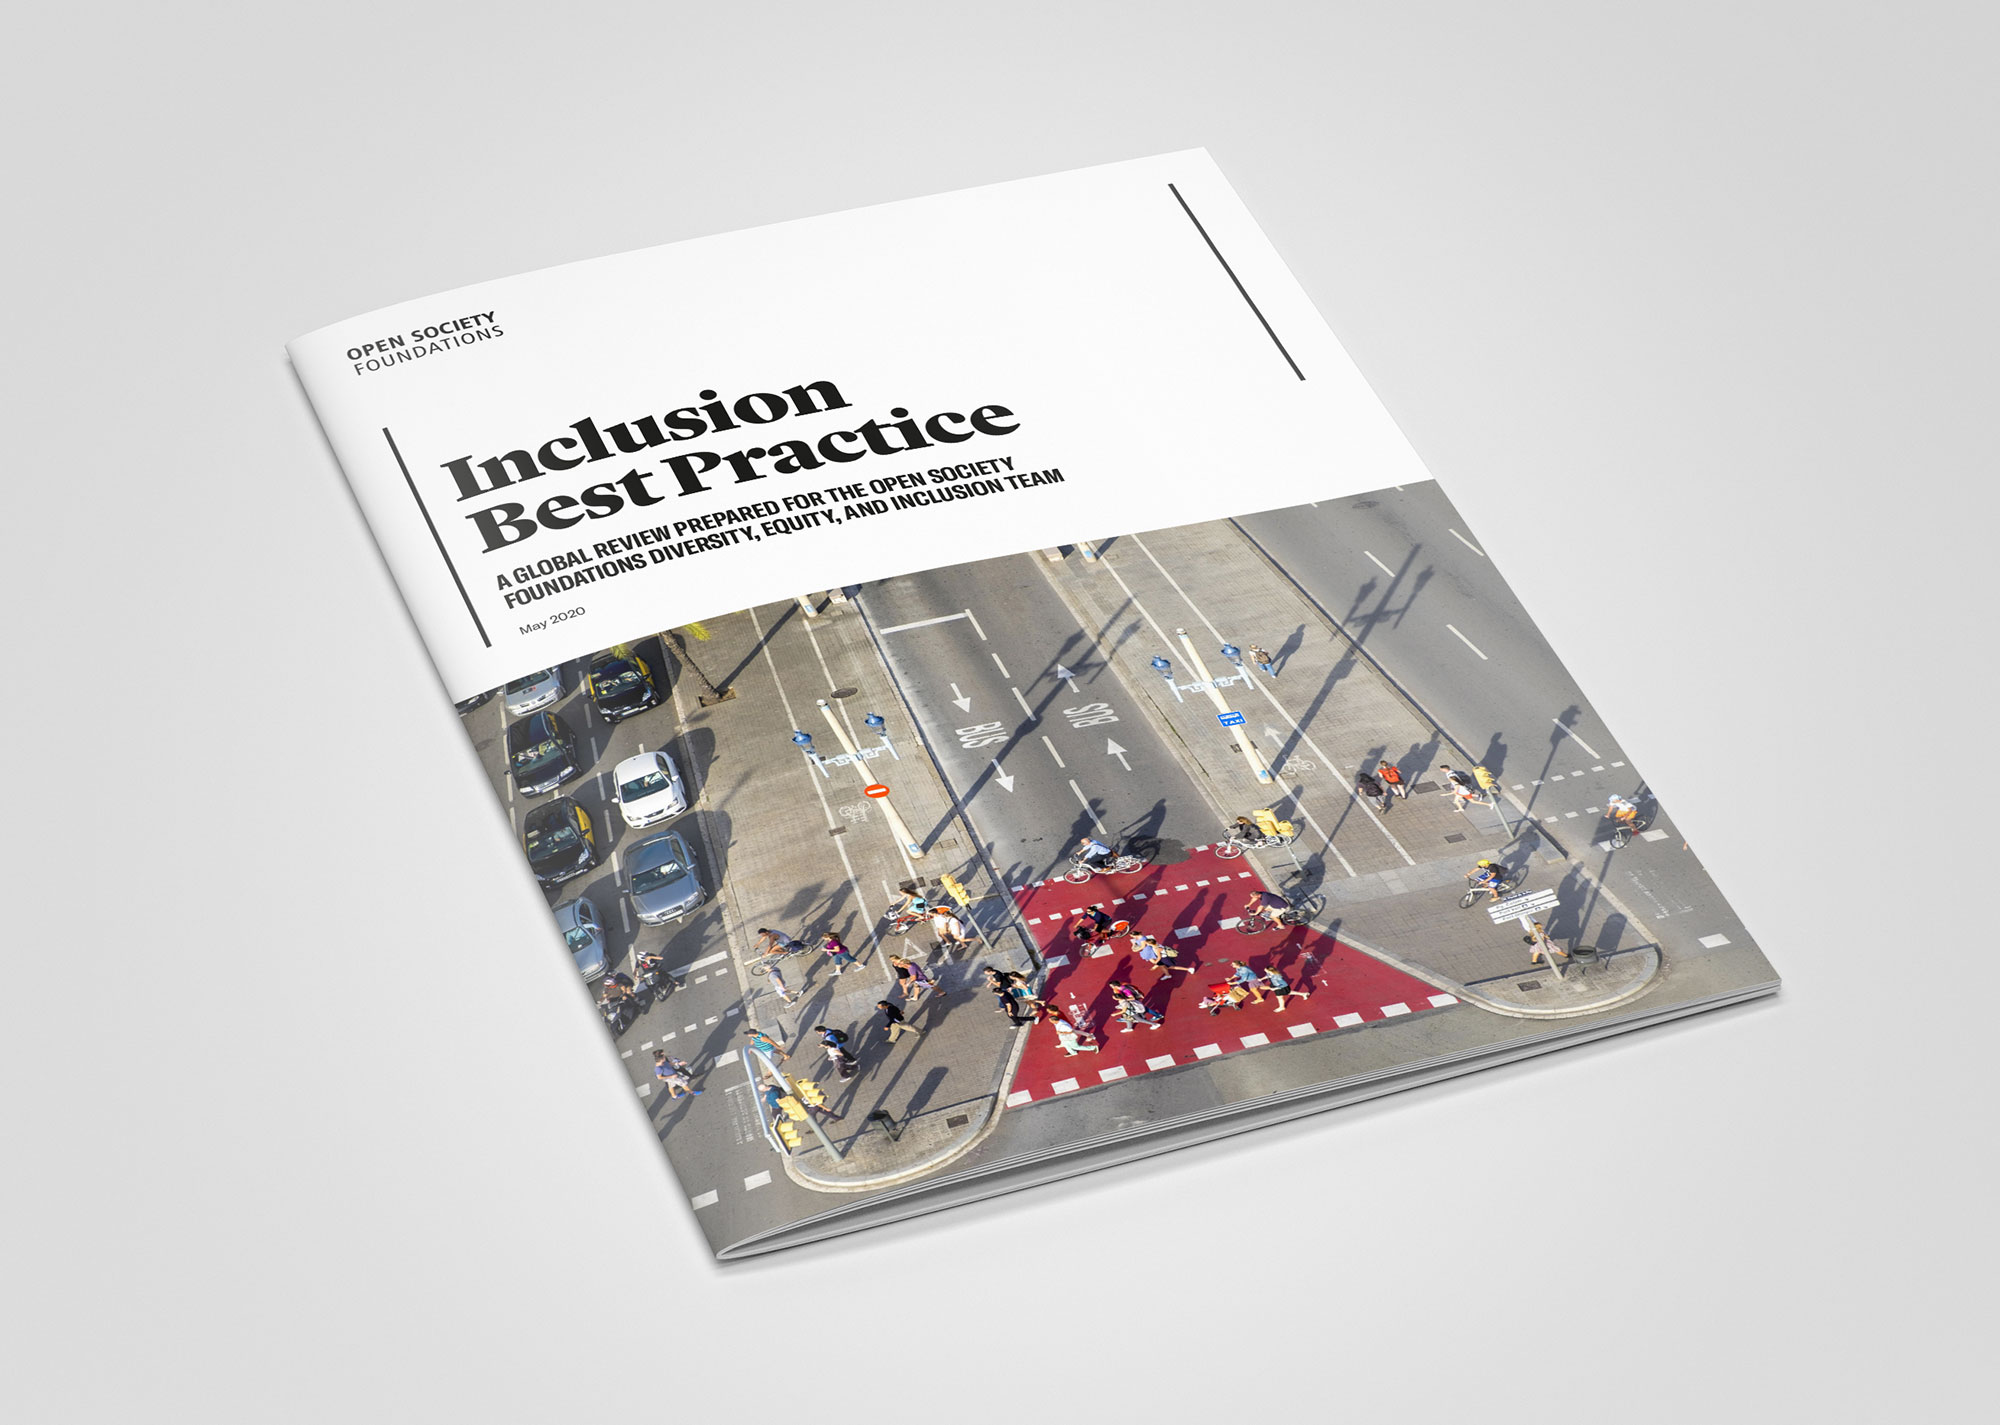 Open Society Foundations Inclusion Best Practice report mock up